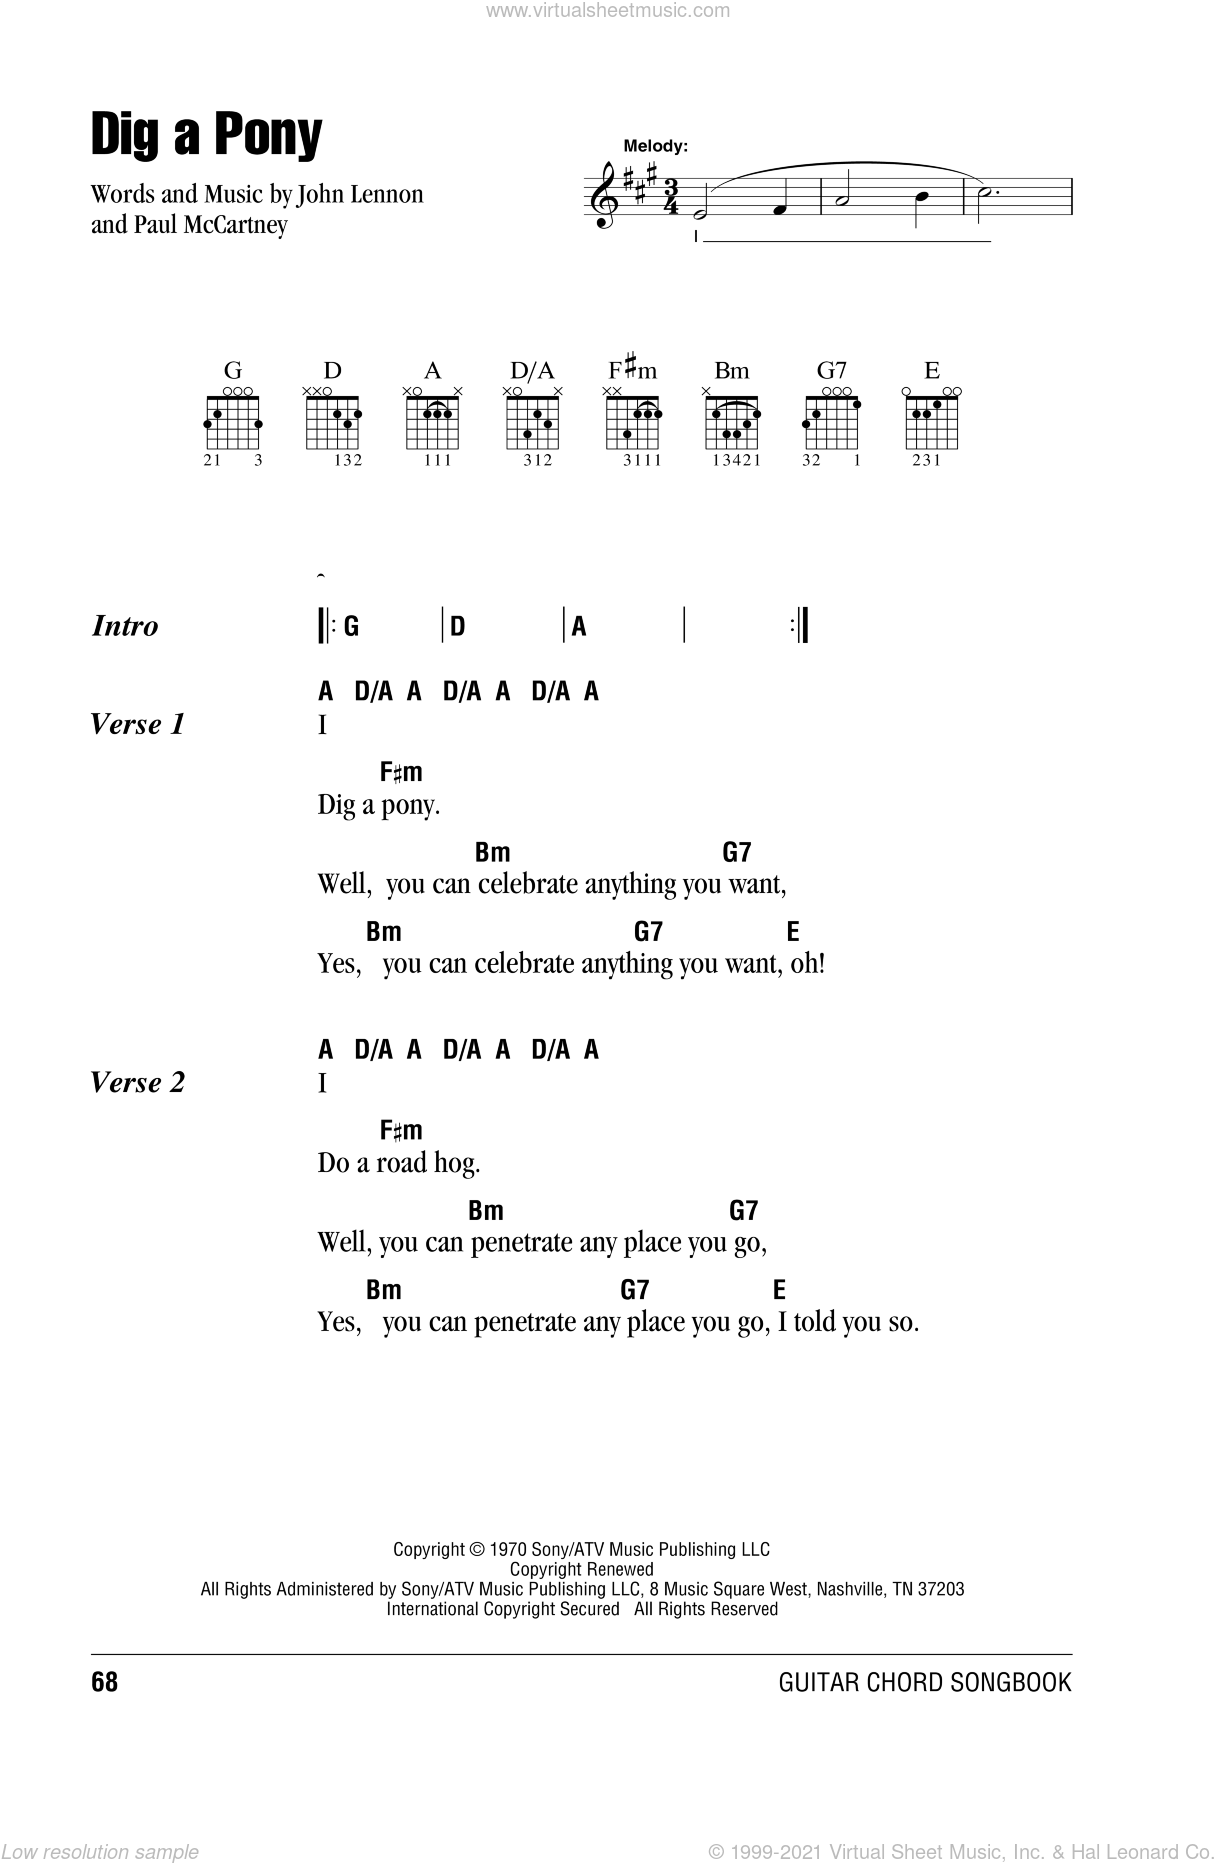 Dig A Pony sheet music for guitar (chords) by The Beatles, John Lennon and Paul McCartney, intermediate skill level